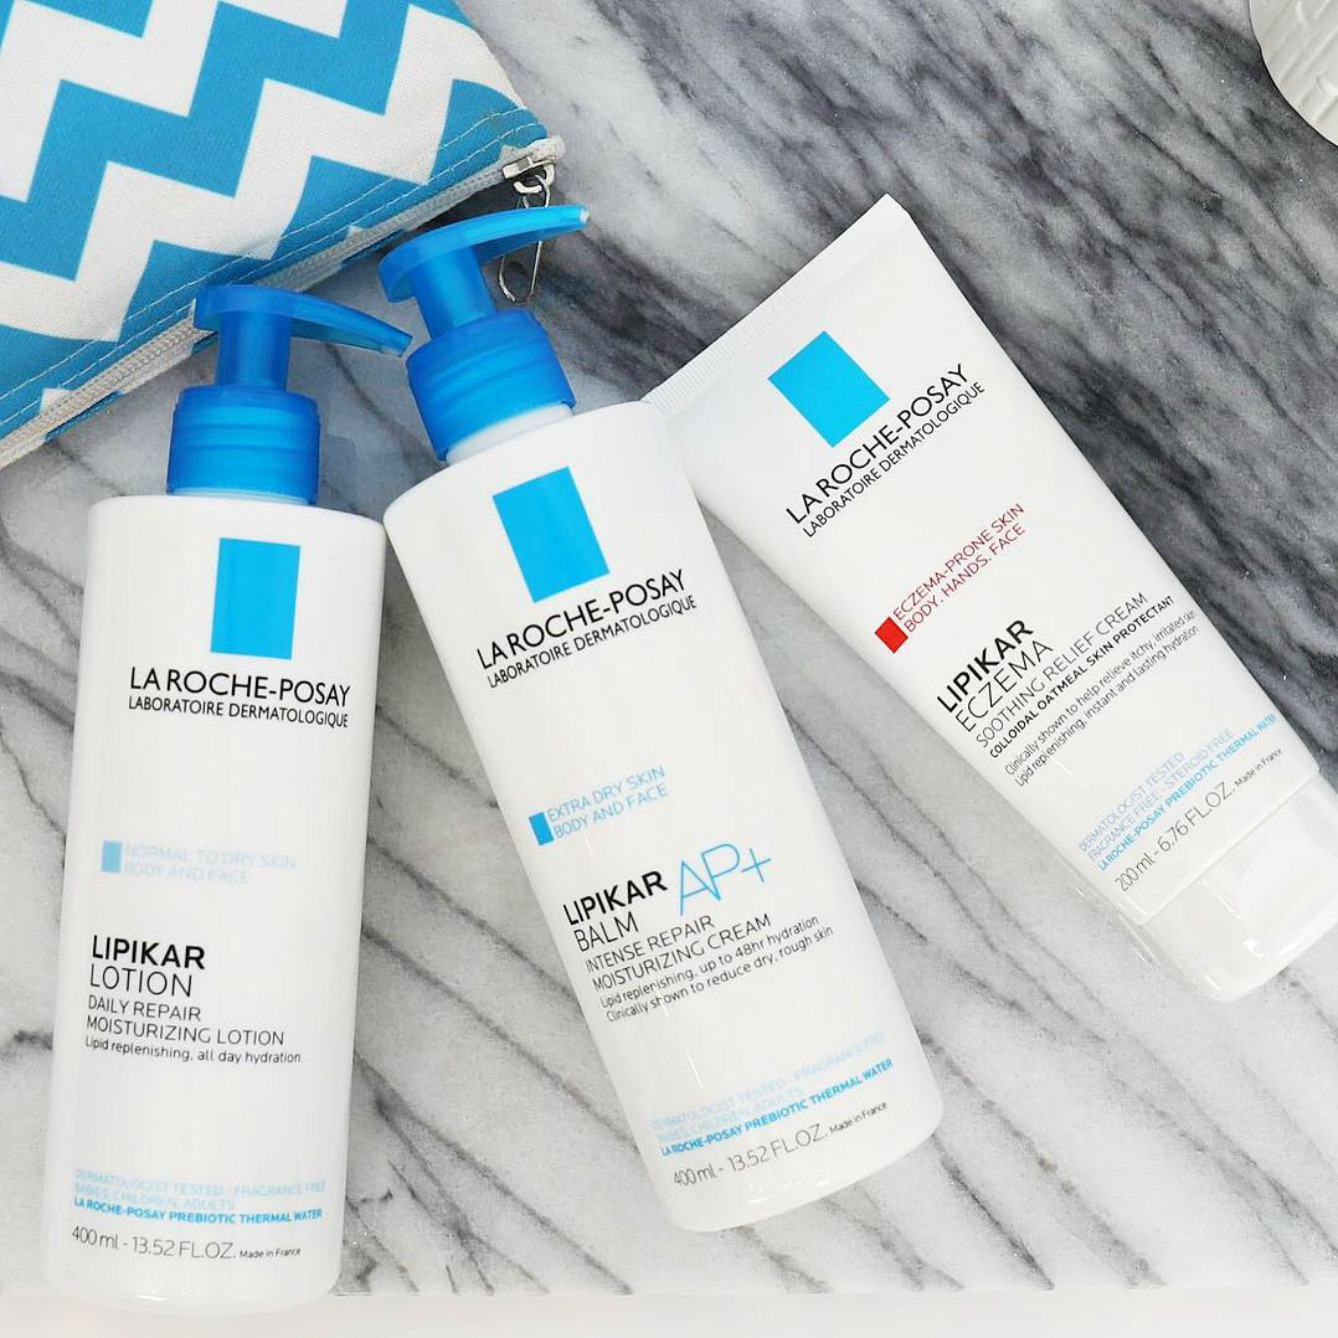 La Roche-Posay Dropped a New Line Just for Eczema Sufferers